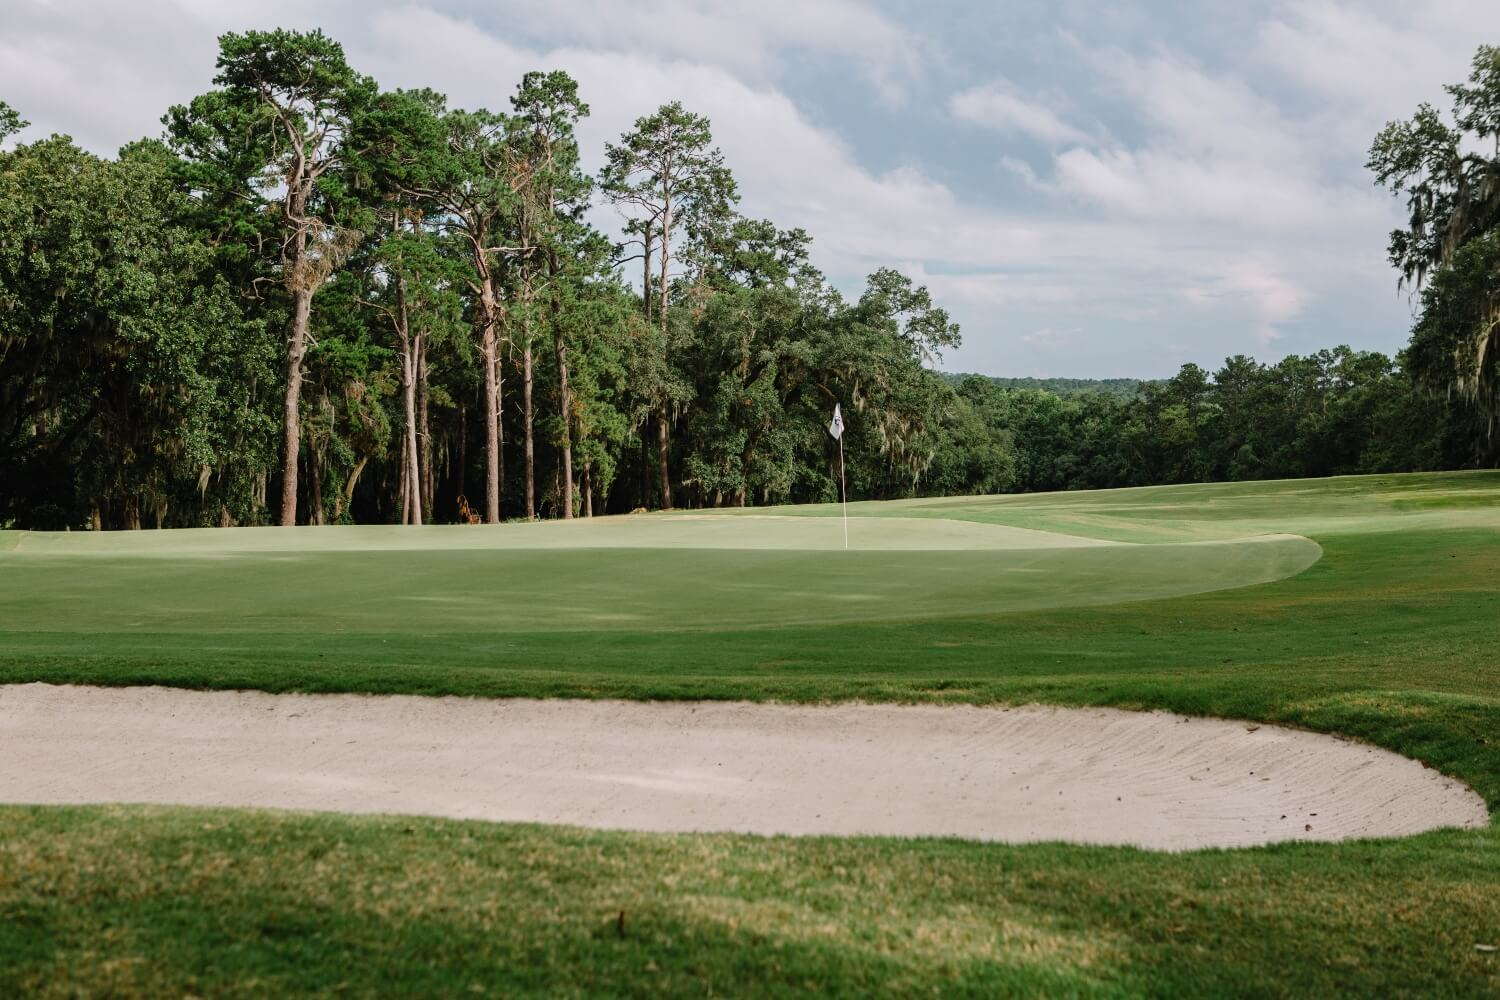 TROON'S HONOURS GOLF SELECTED TO MANAGE CAPITAL CITY COUNTRY CLUB IN TALLAHASSEE, FLORIDA